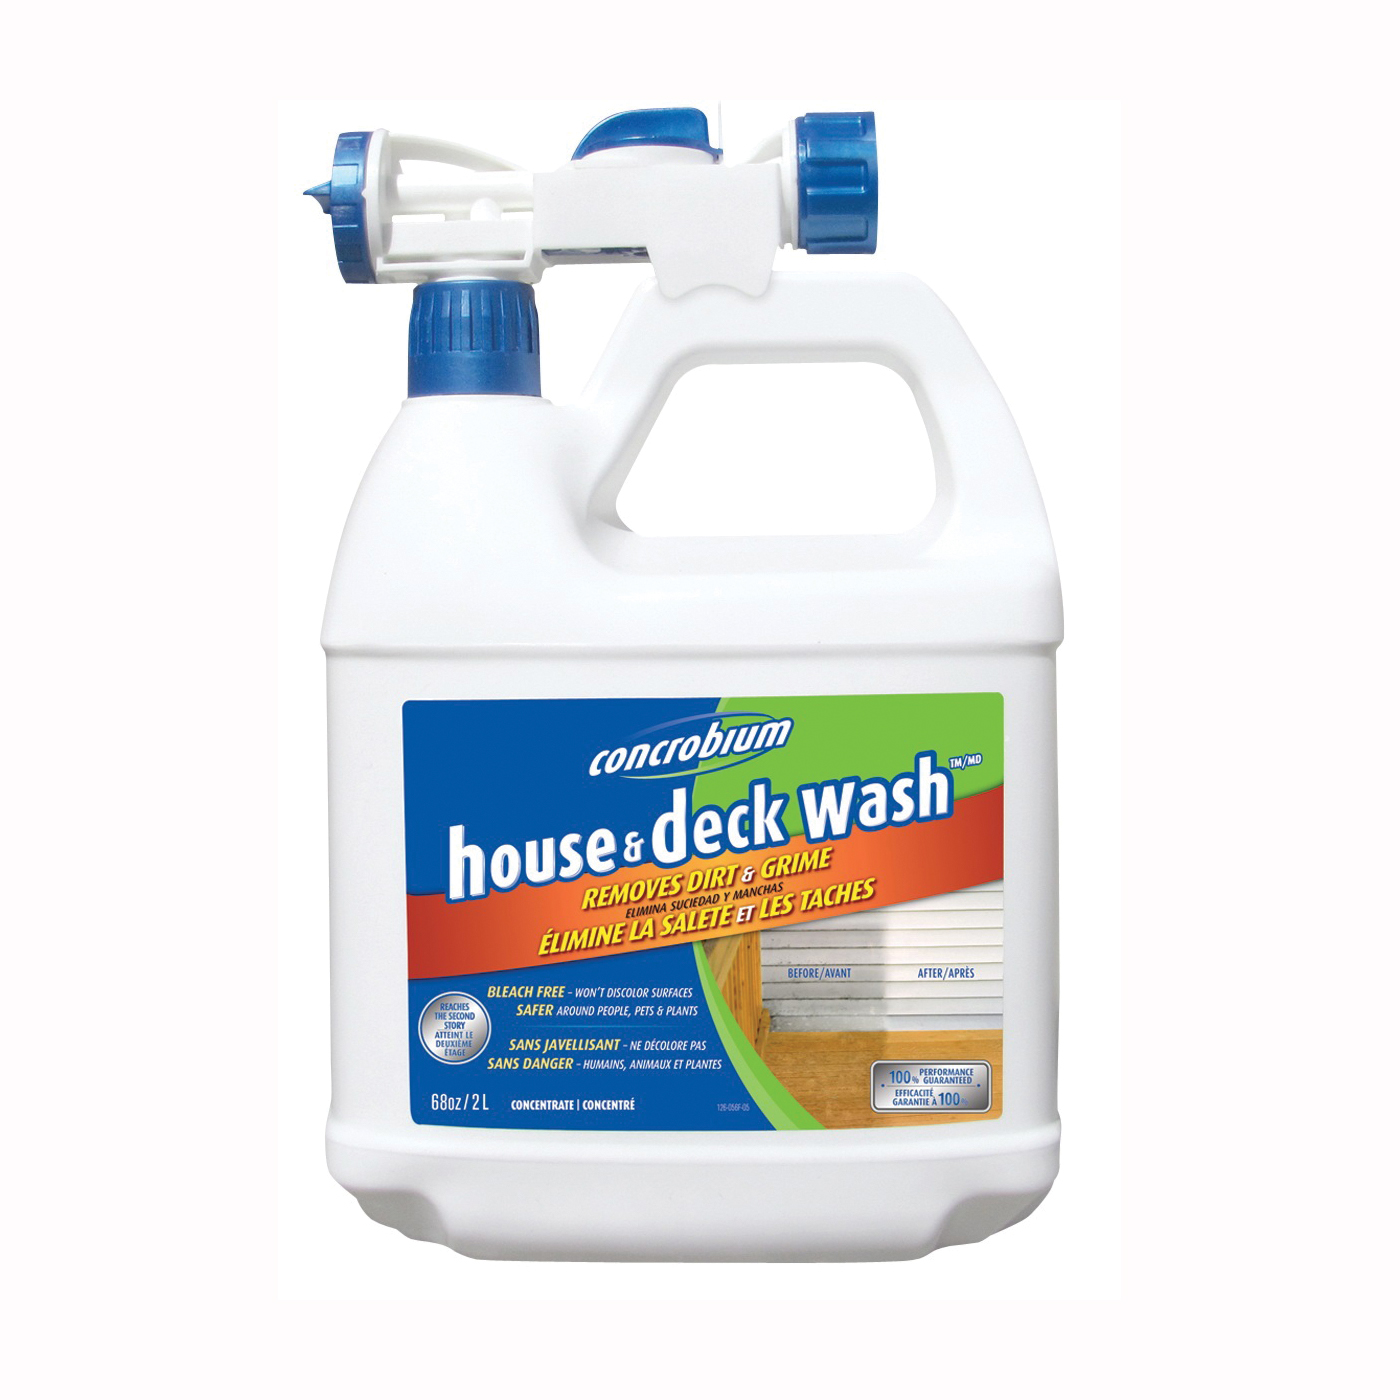 Picture of Concrobium 126-056 House and Deck Wash, Liquid, Very Little, Transparent, 68 oz, Bottle